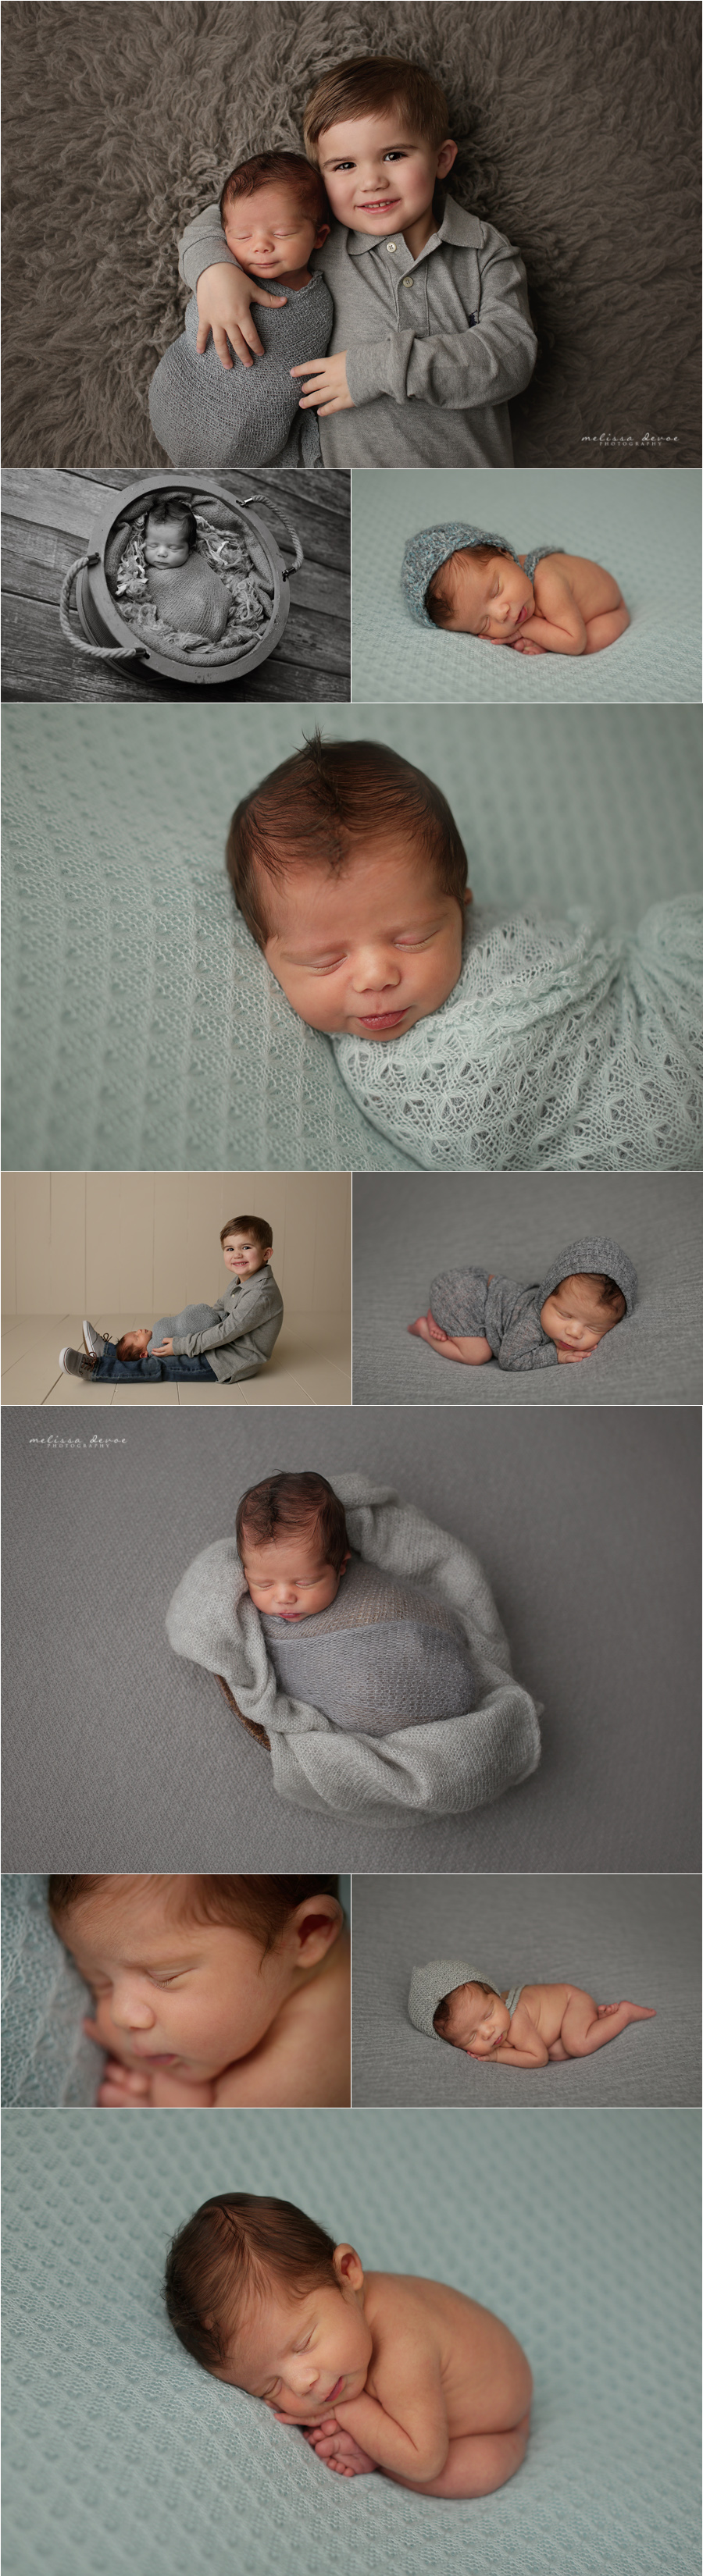 Melissa DeVoe Photography Raleigh NC Best Newborn Baby Photographer